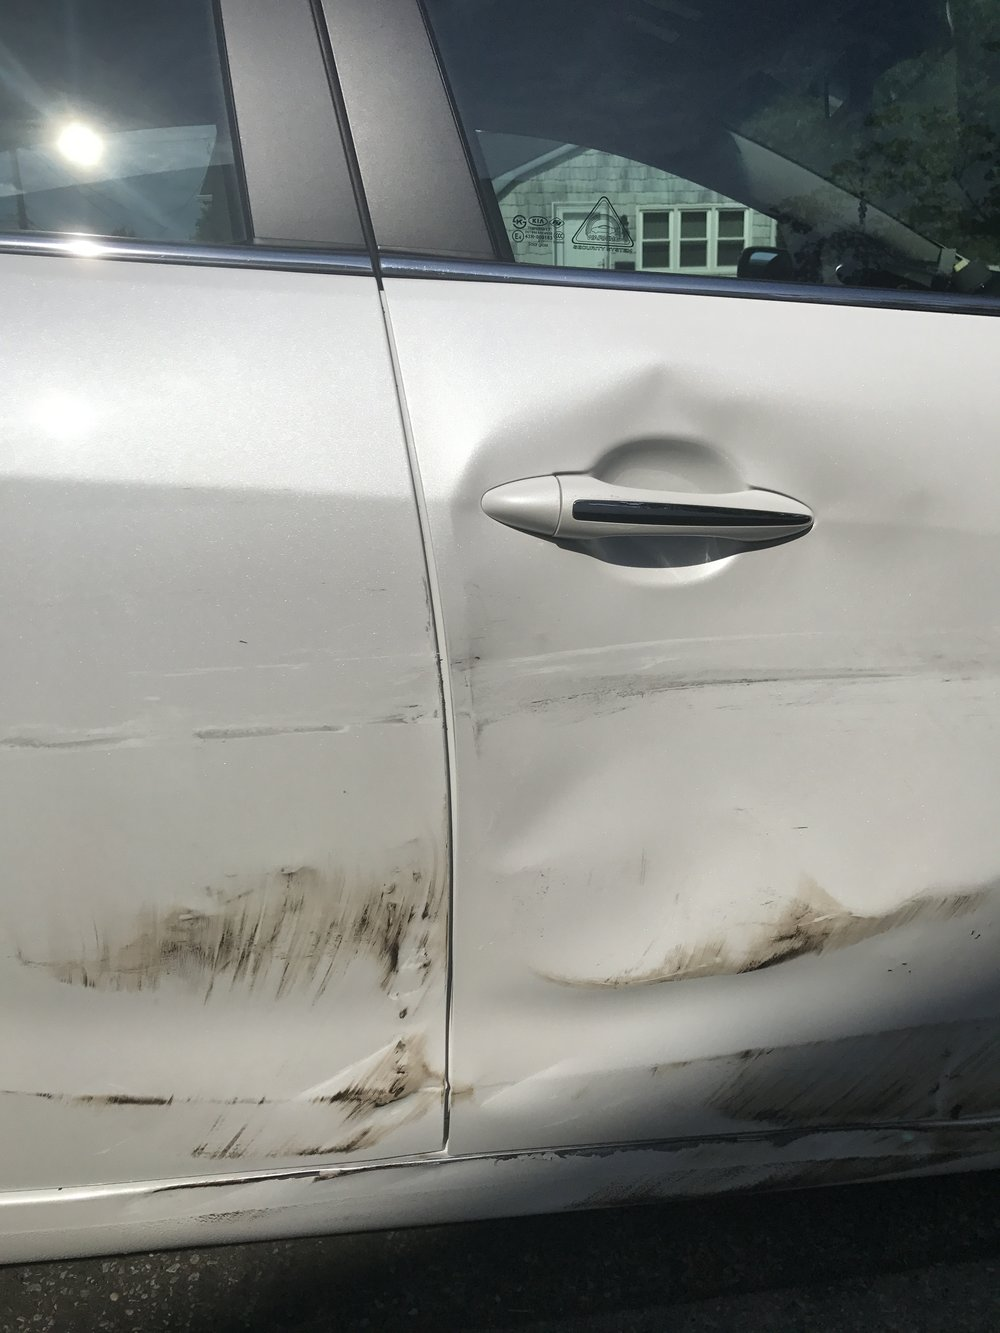 My car after a woman signaled into my lane and side swiped me (no one checks their blind spot)